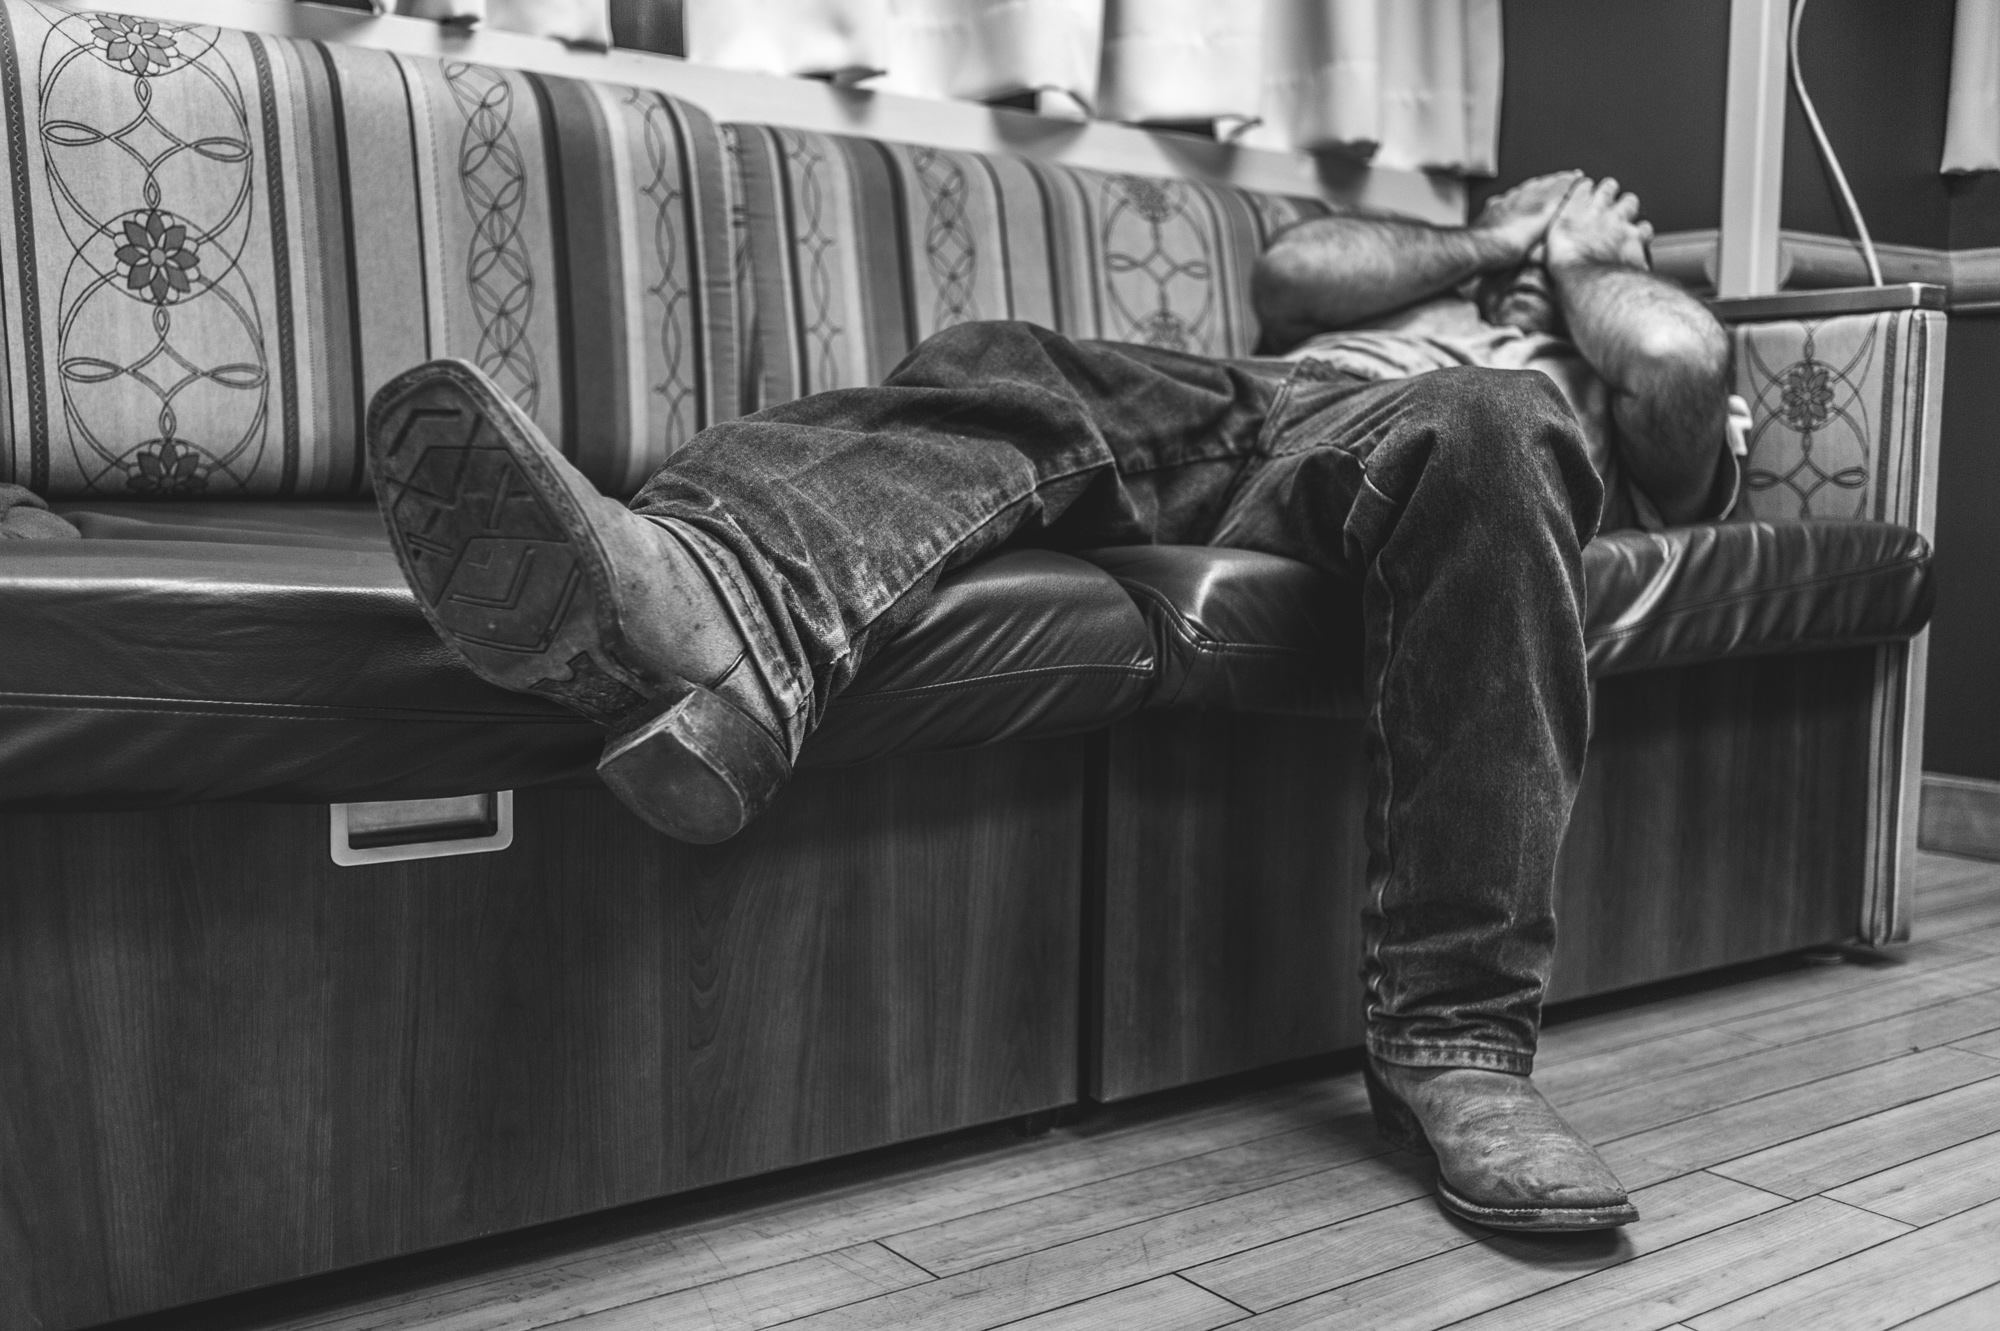 Black and white photo of an expectant father lying on the couch, waiting for the birth of his child, and rubbing his eyes in exhaustion